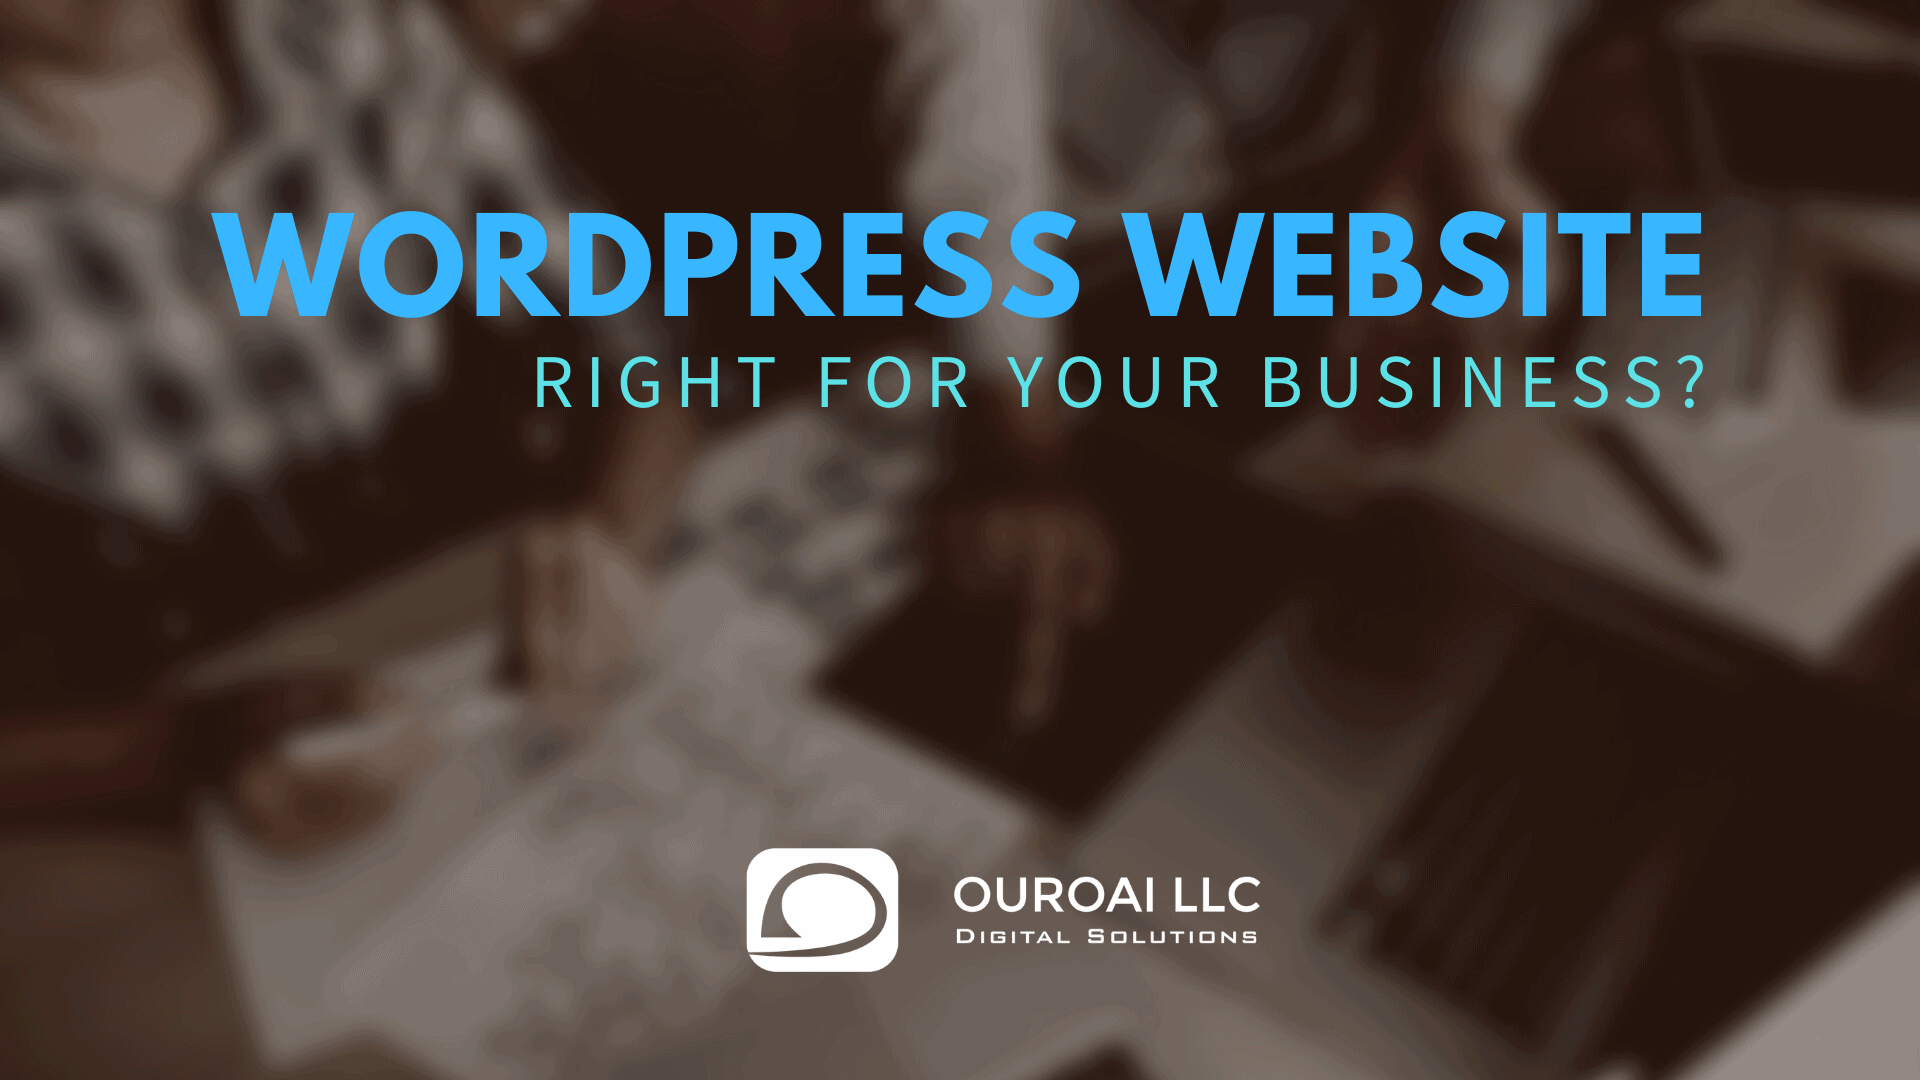 Ouroai Header Image Is WordPress Right For Your Business